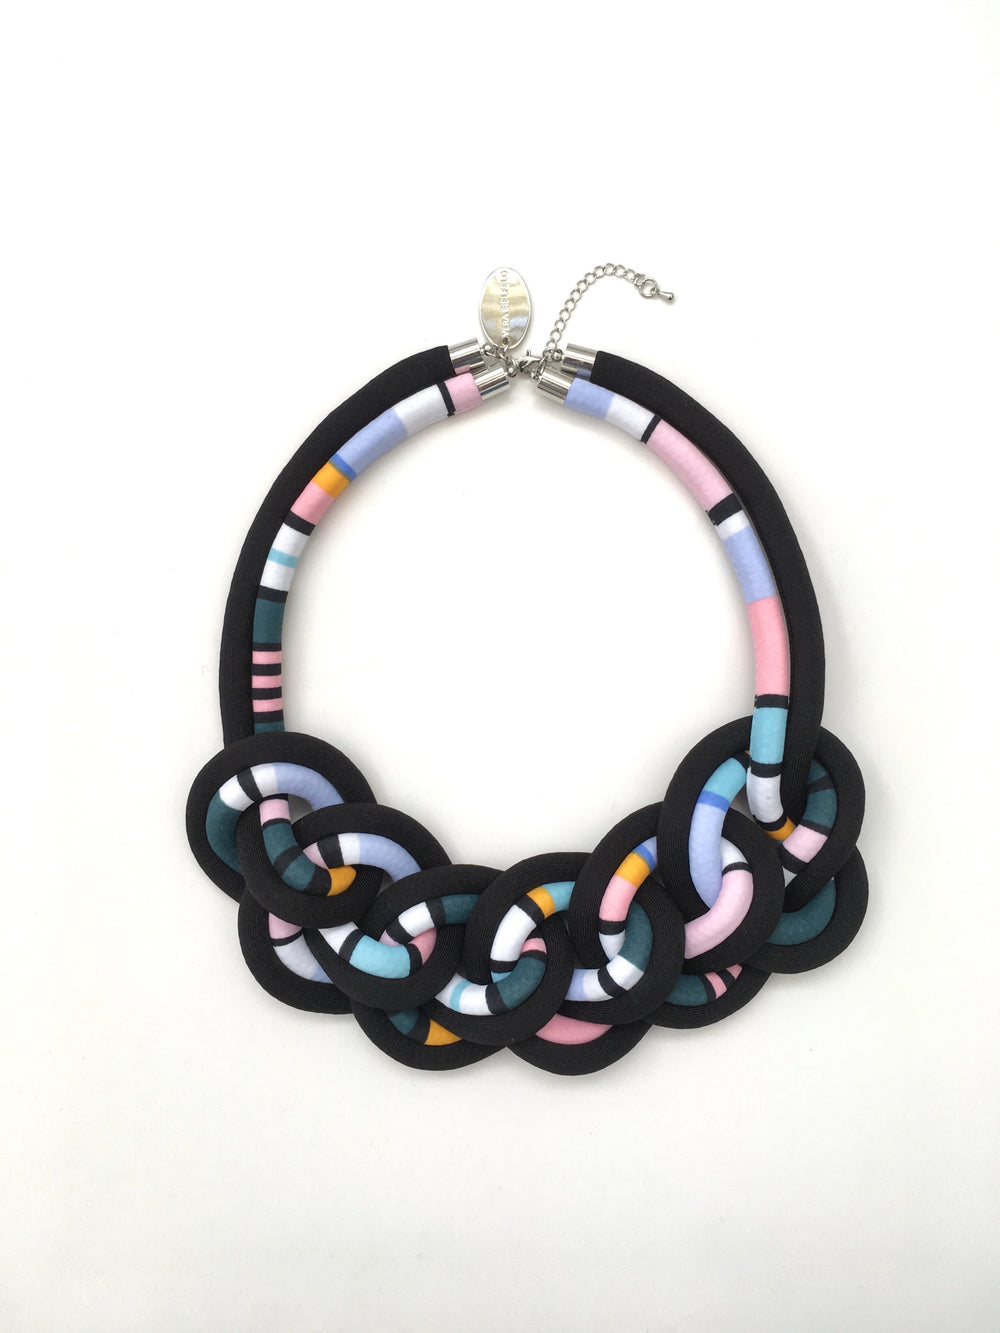 COLLAR CADENA DOBLE negro/rayas multicolor